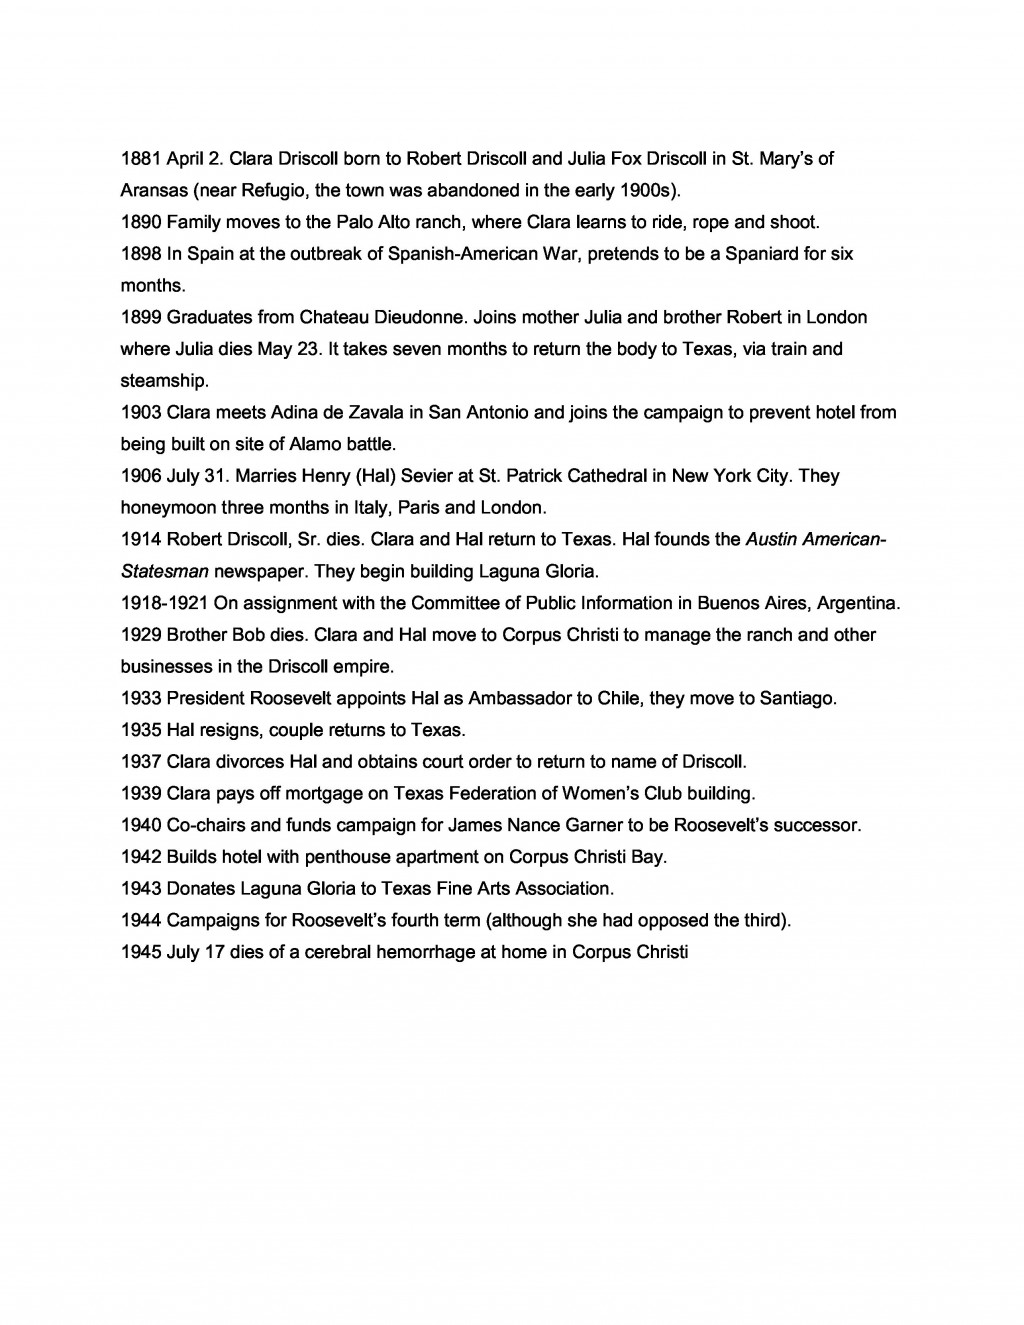 011 Driscoll Timeline Essay Example Sample Unforgettable Biography About Myself Elementary Self Large